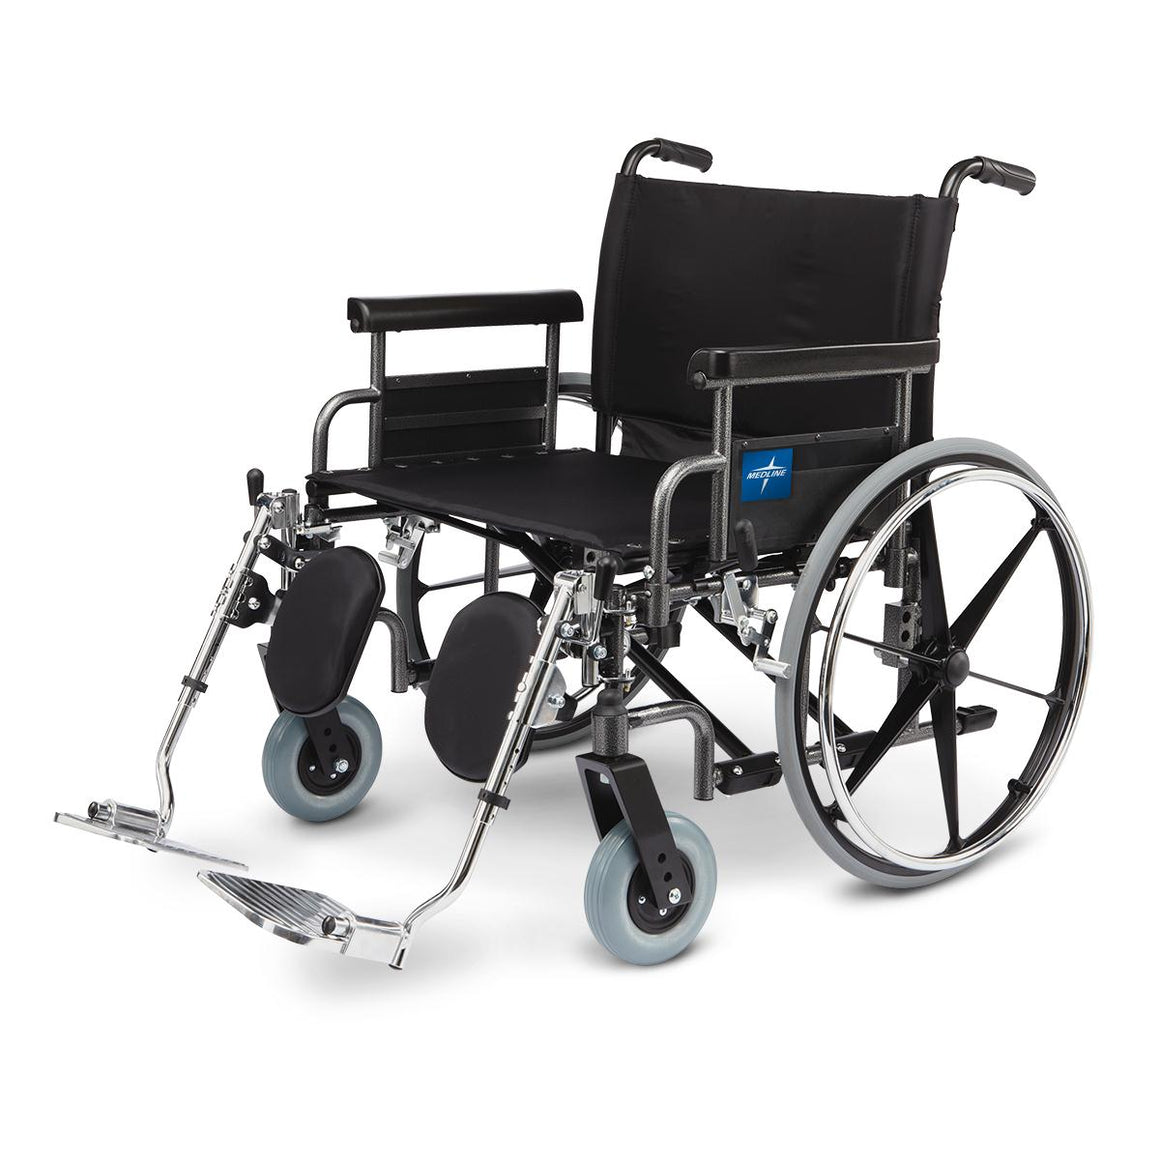 Shuttle Extra-Wide Wheelchairs, Each